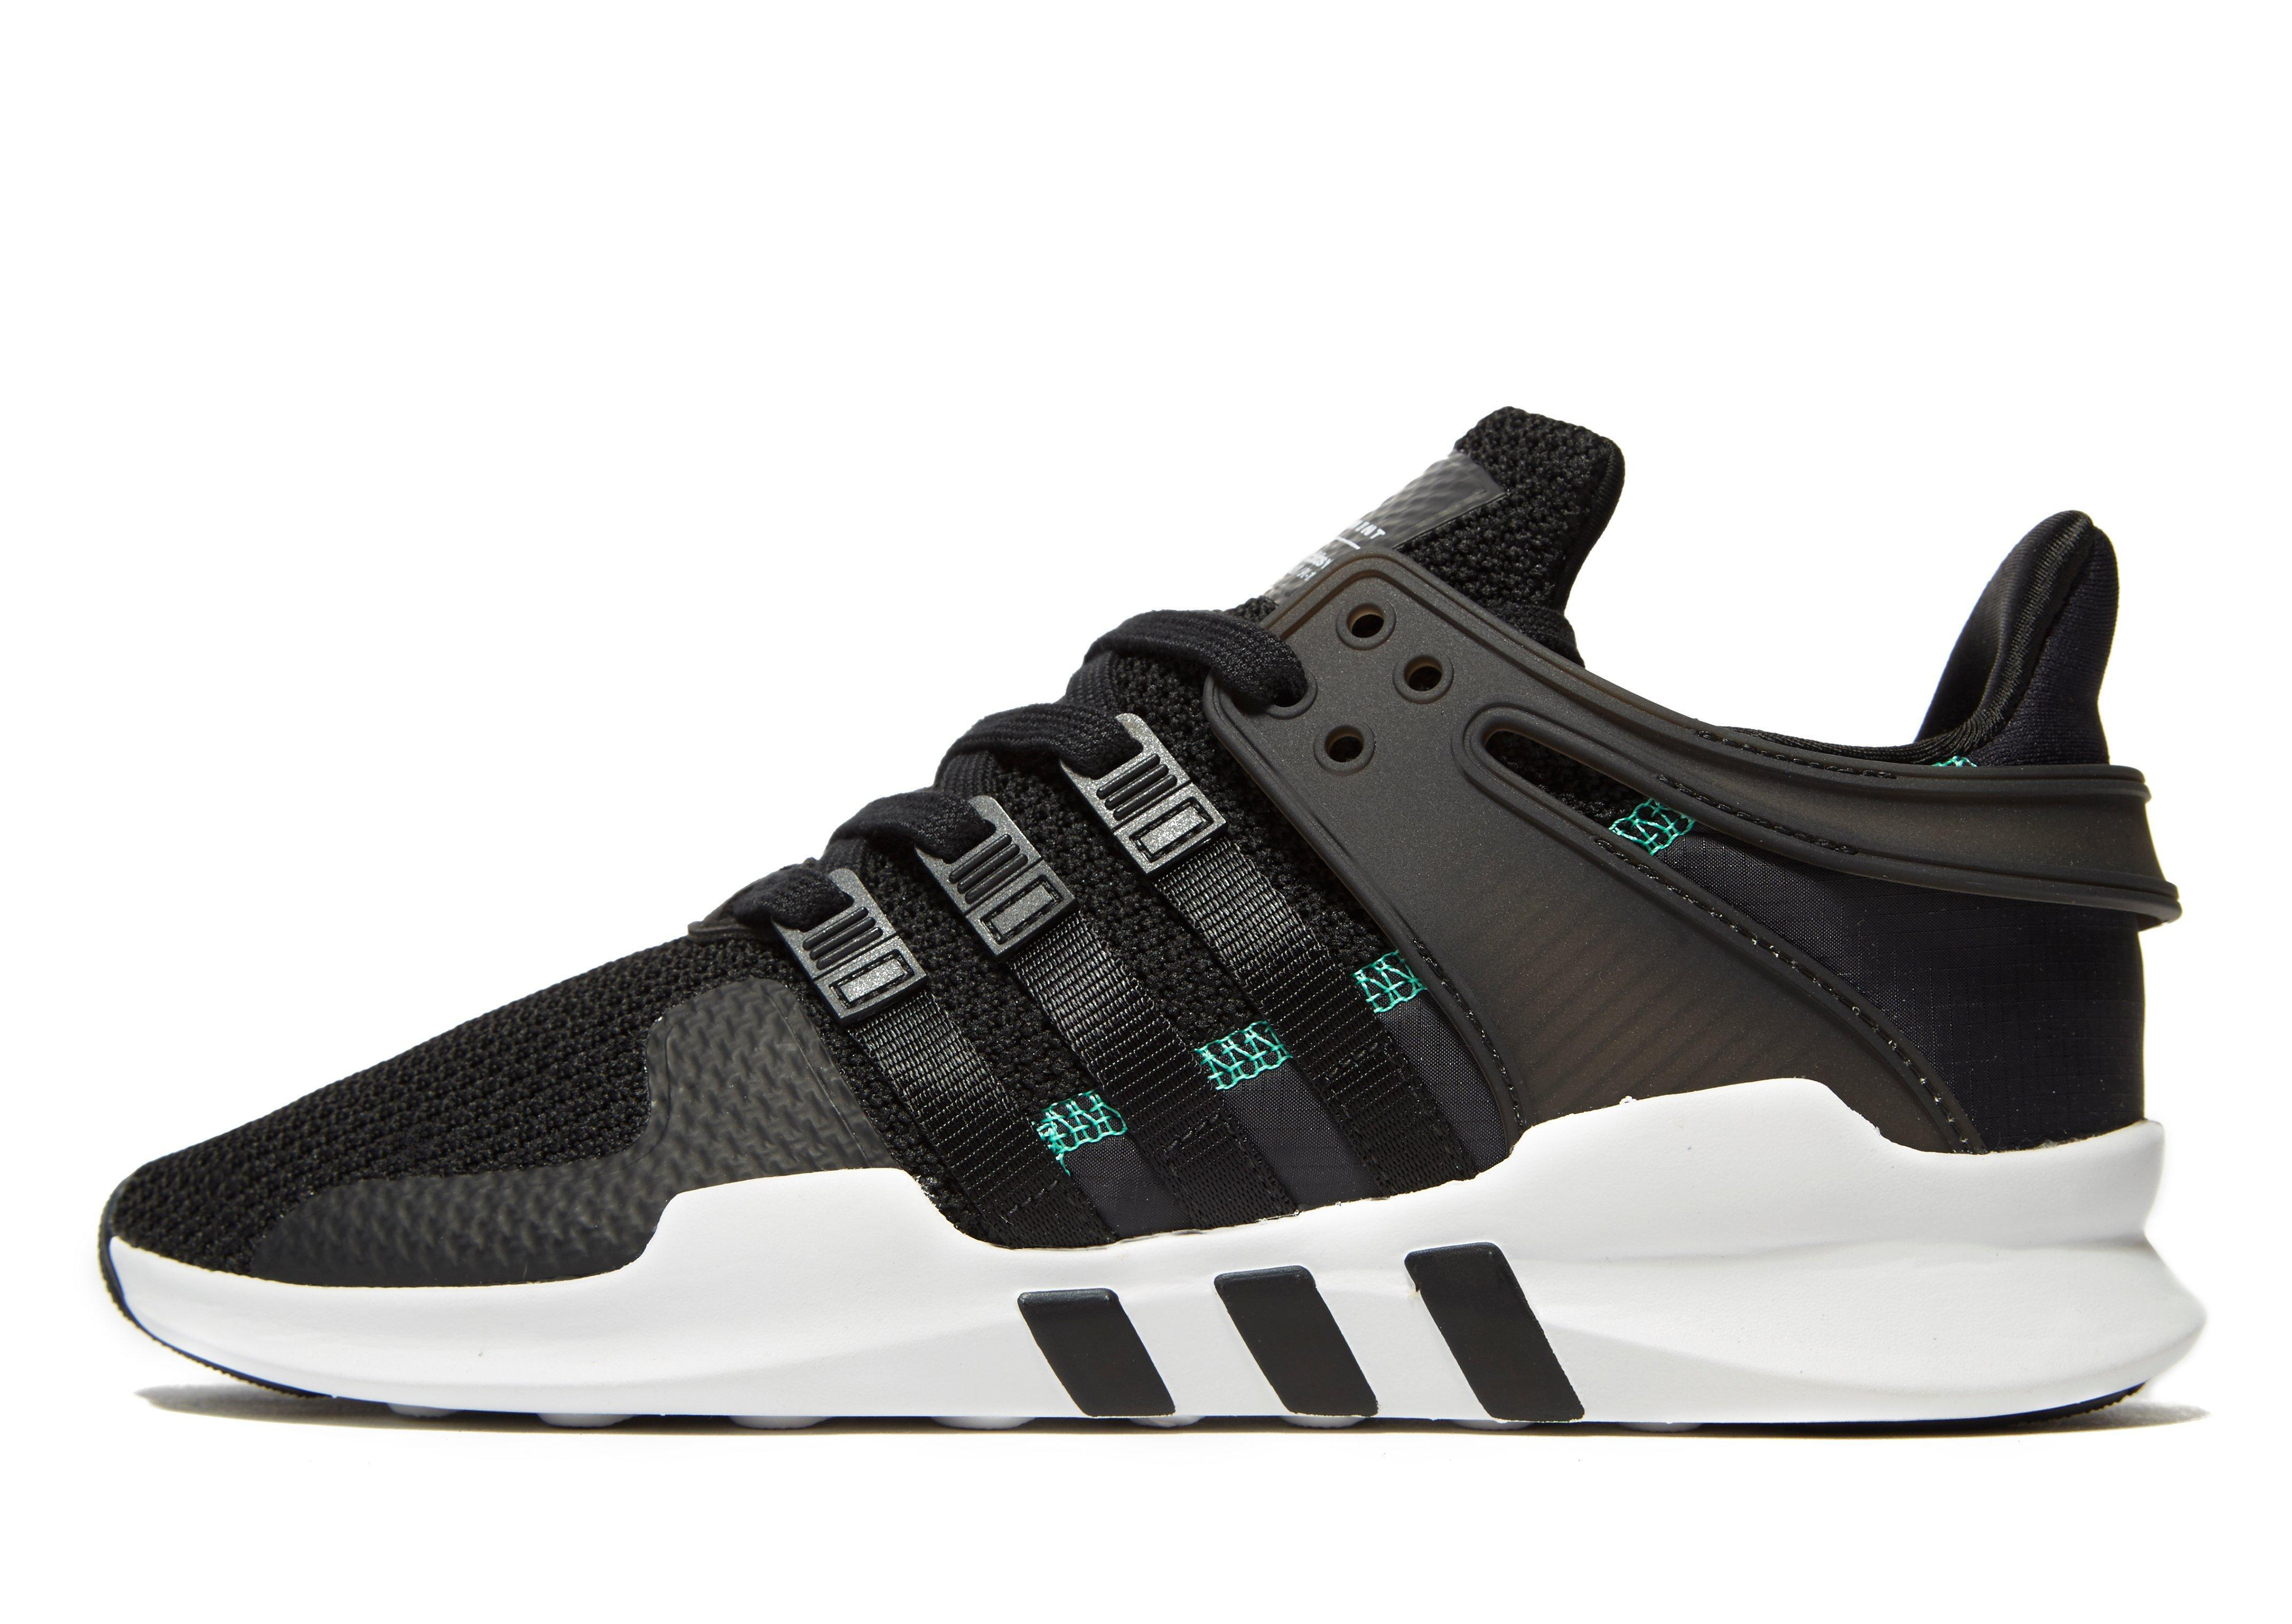 4069a1d430d0 Lyst - adidas Originals Eqt Support Adv Ripstop in Black for Men